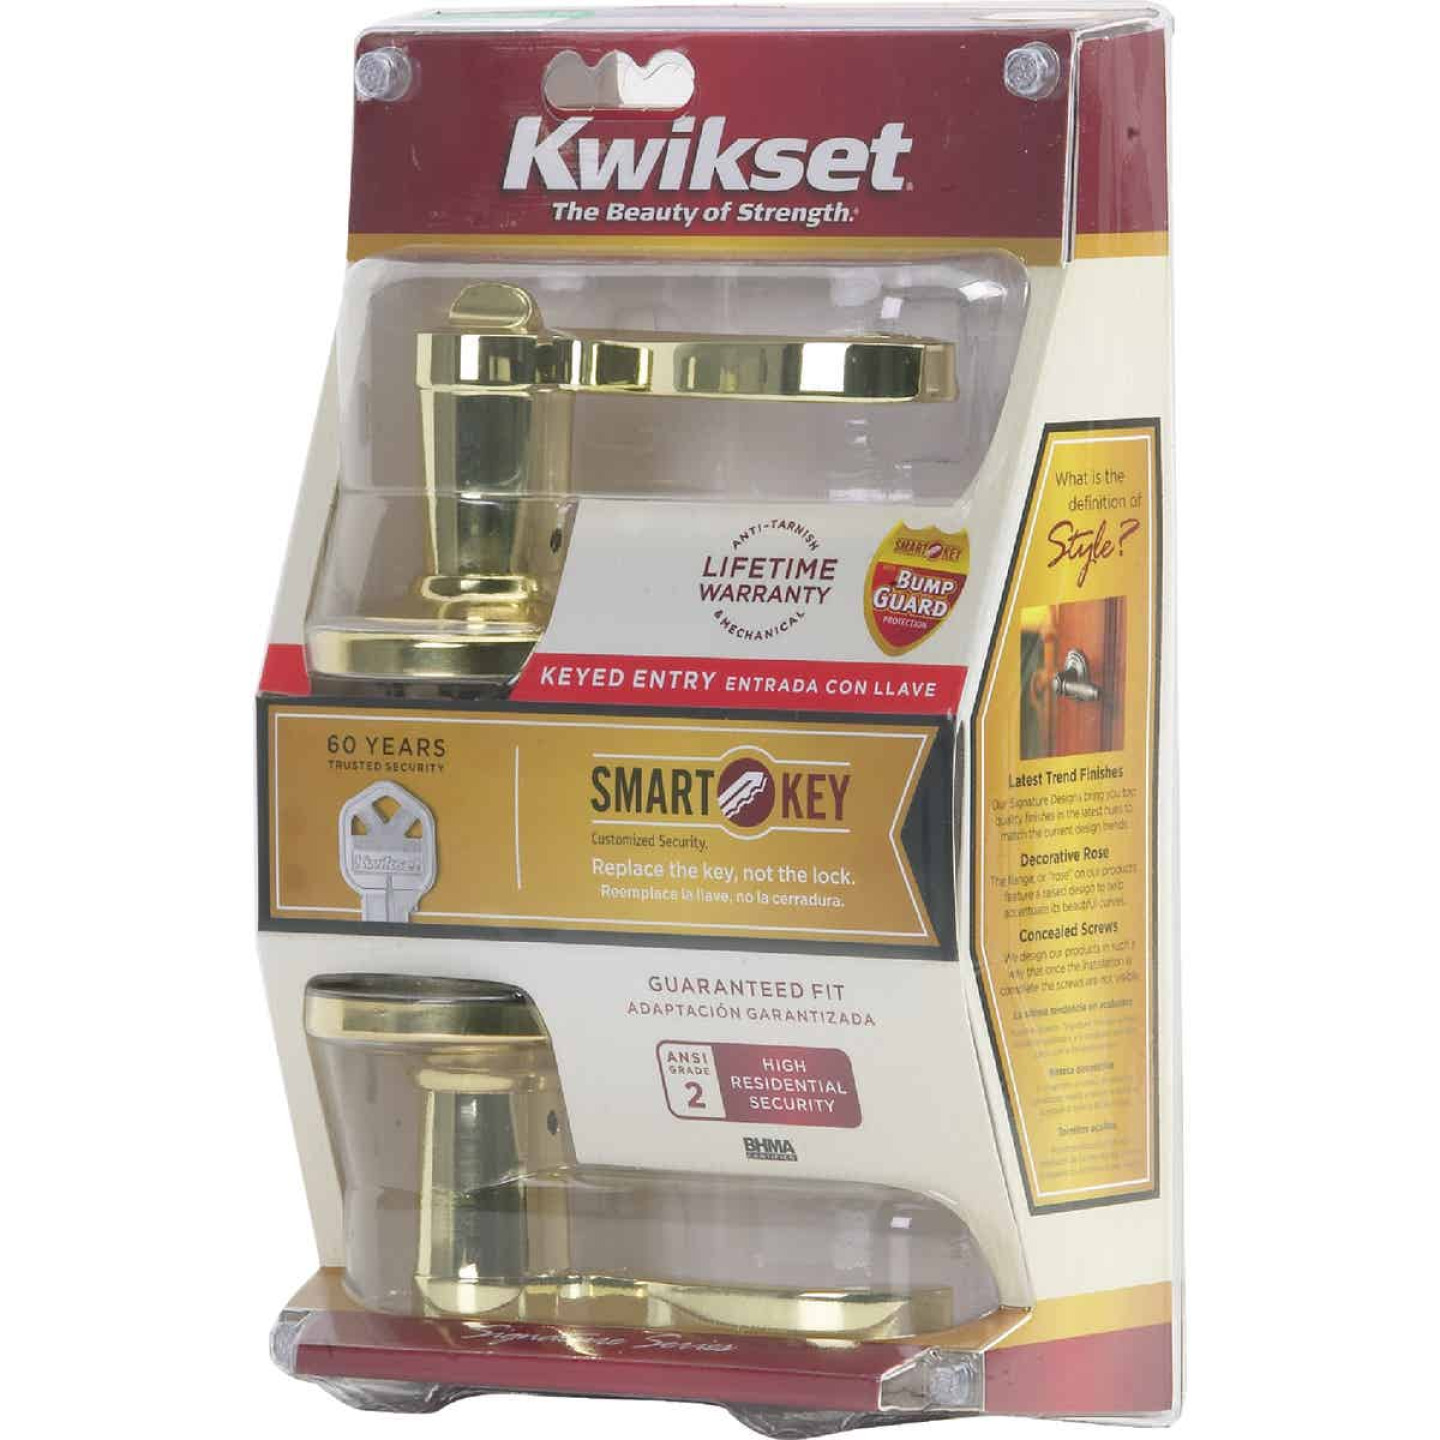 Kwikset Signature Series Polished Brass Lido Entry Door Lever with Smartkey Image 5